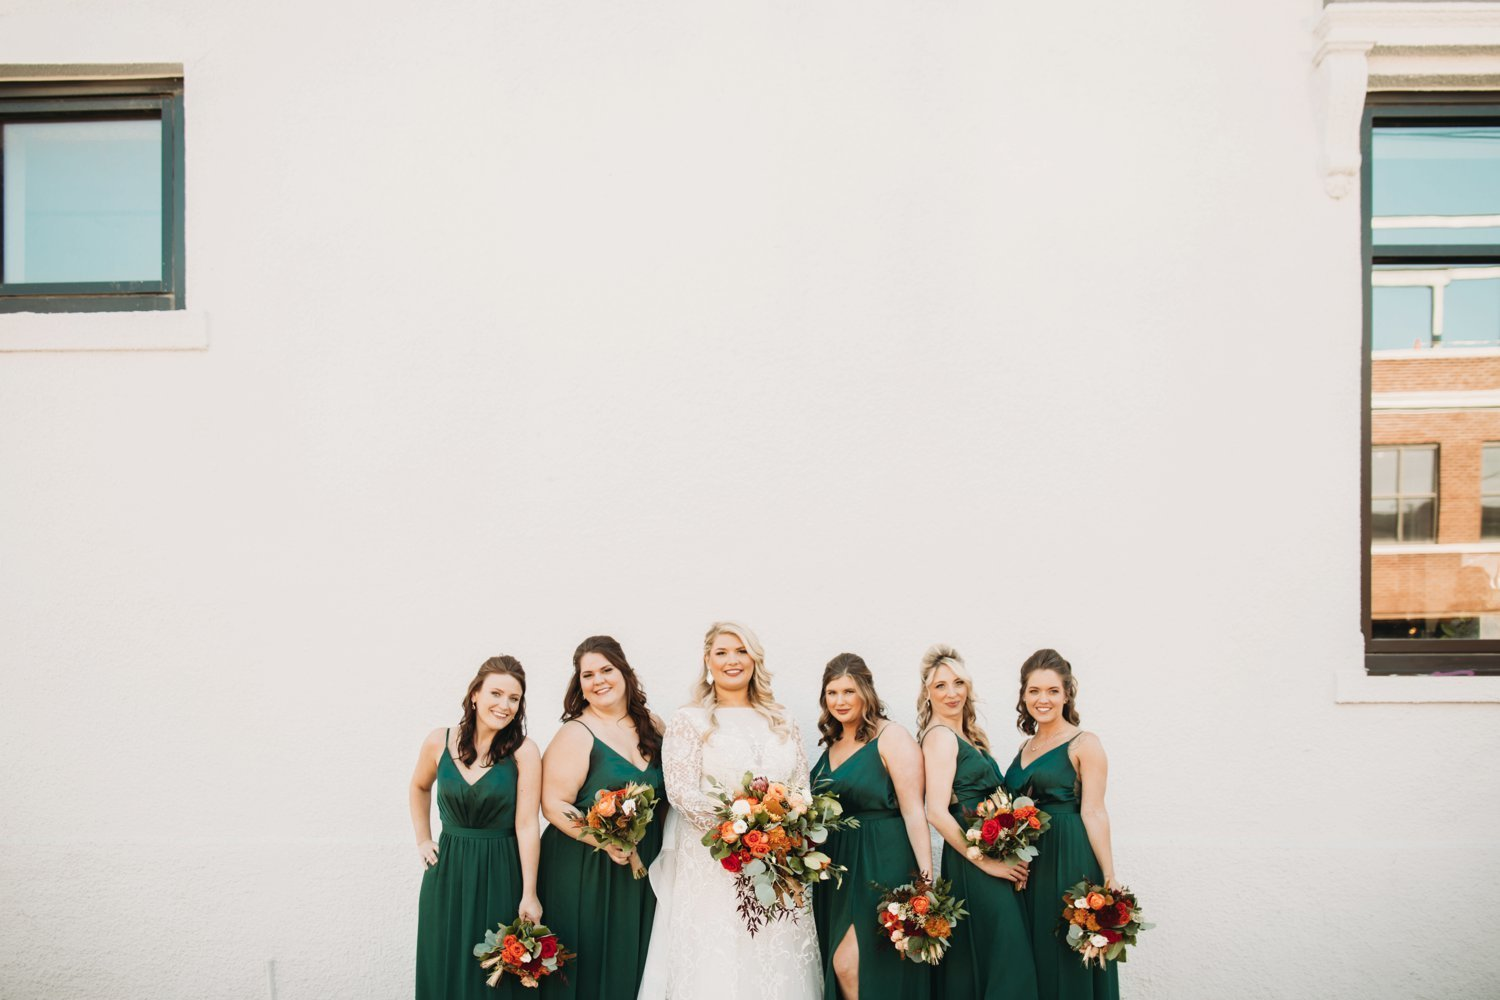 Kansas City Salt Lake City Destination Wedding Photographer_0051